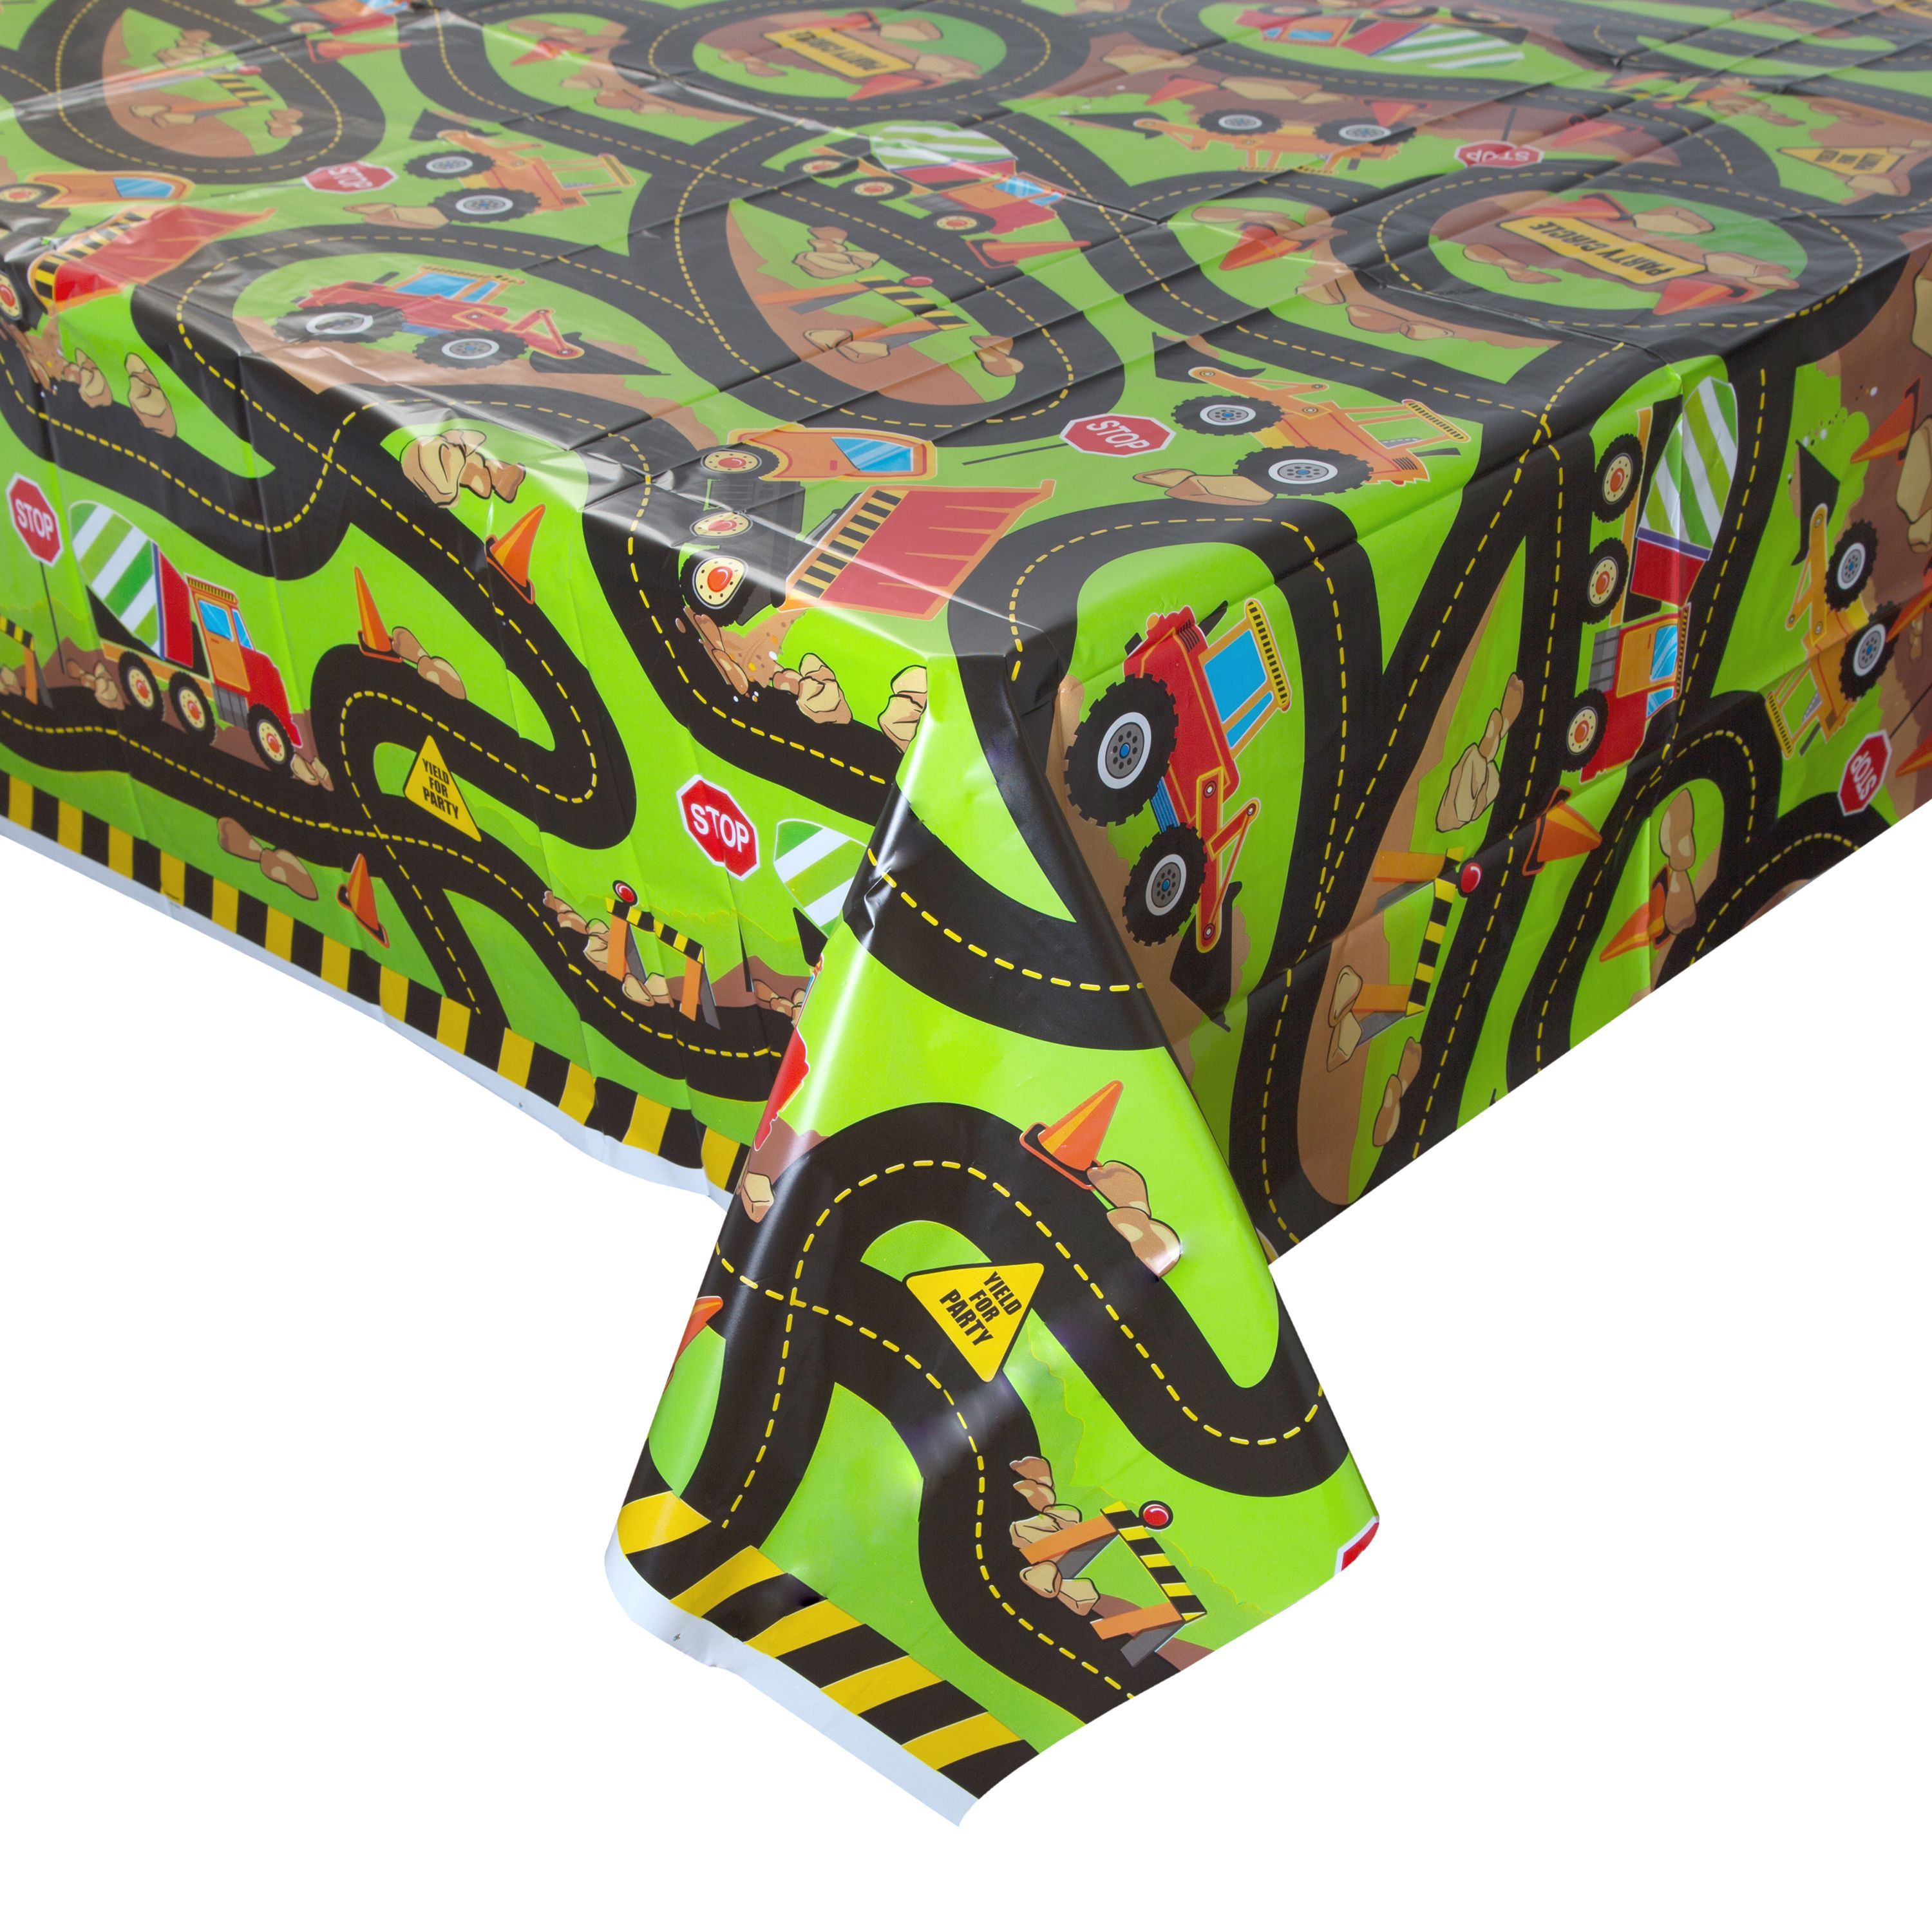 Construction Plastic Party Tablecloth, 84 x 54in